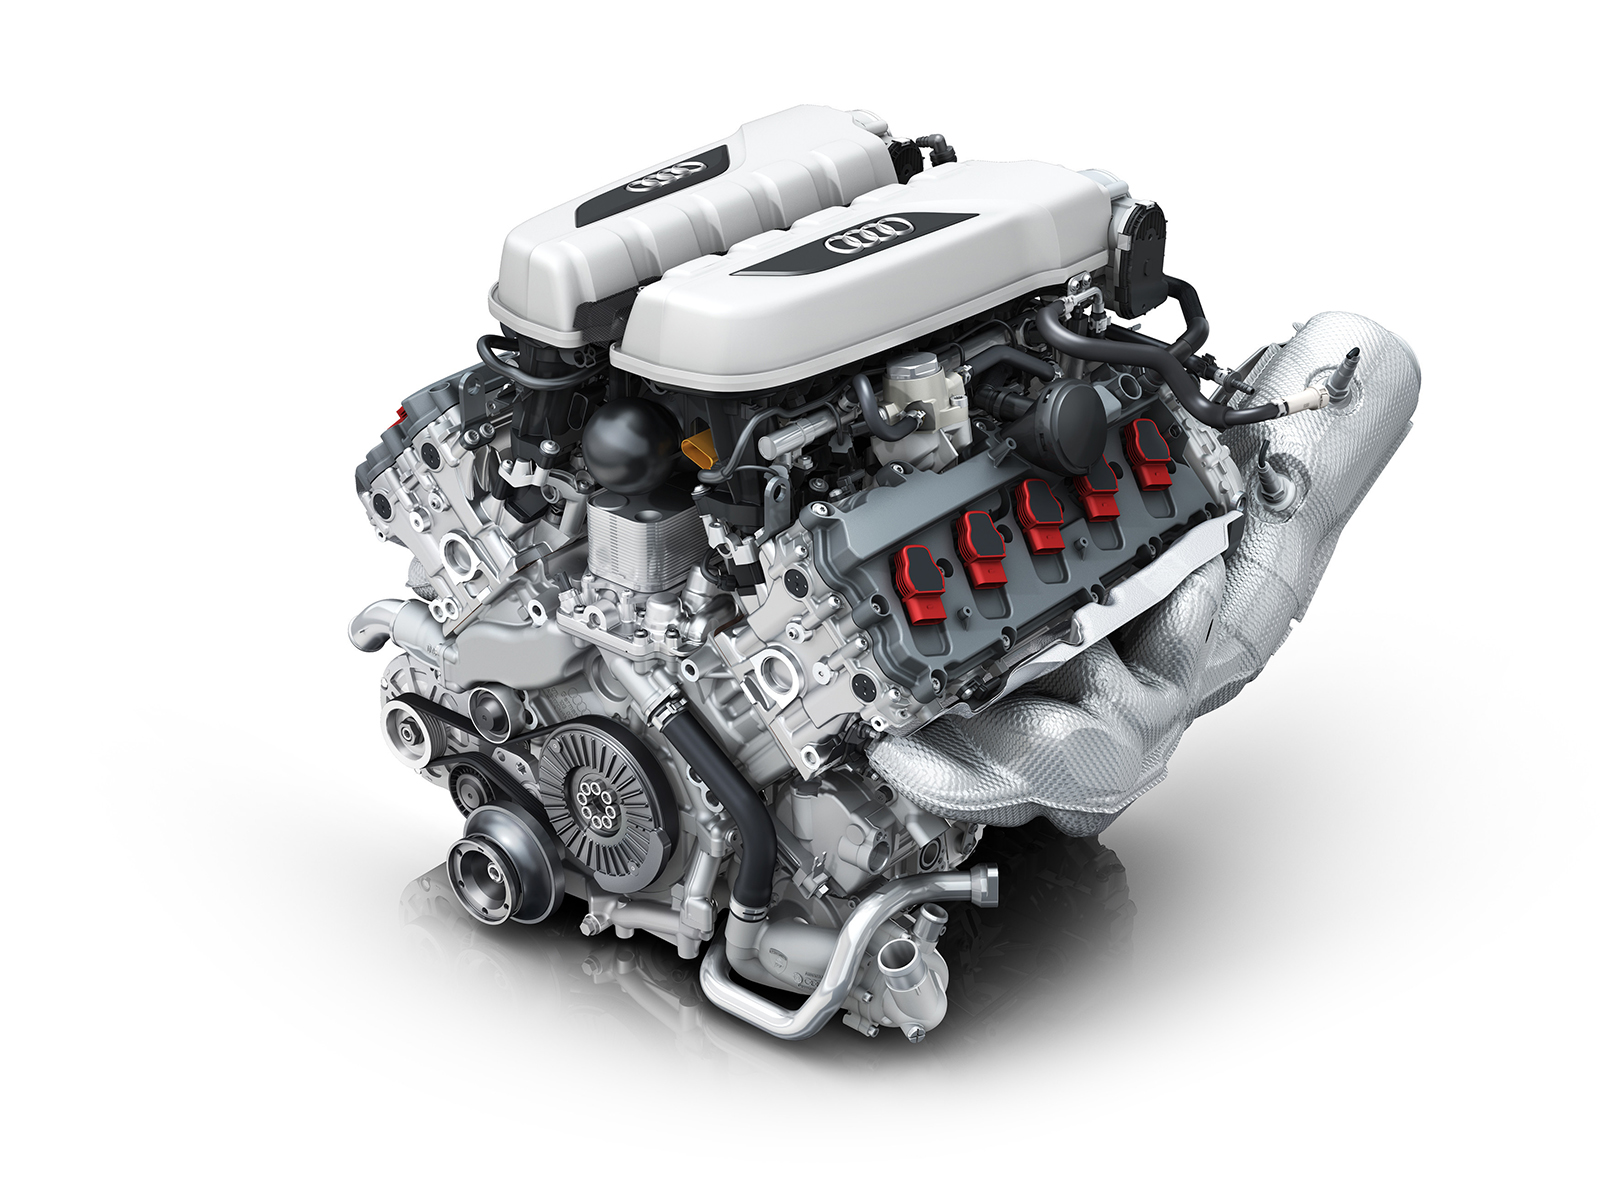 The heart of the Audi R8: the V10 naturally aspirated engine